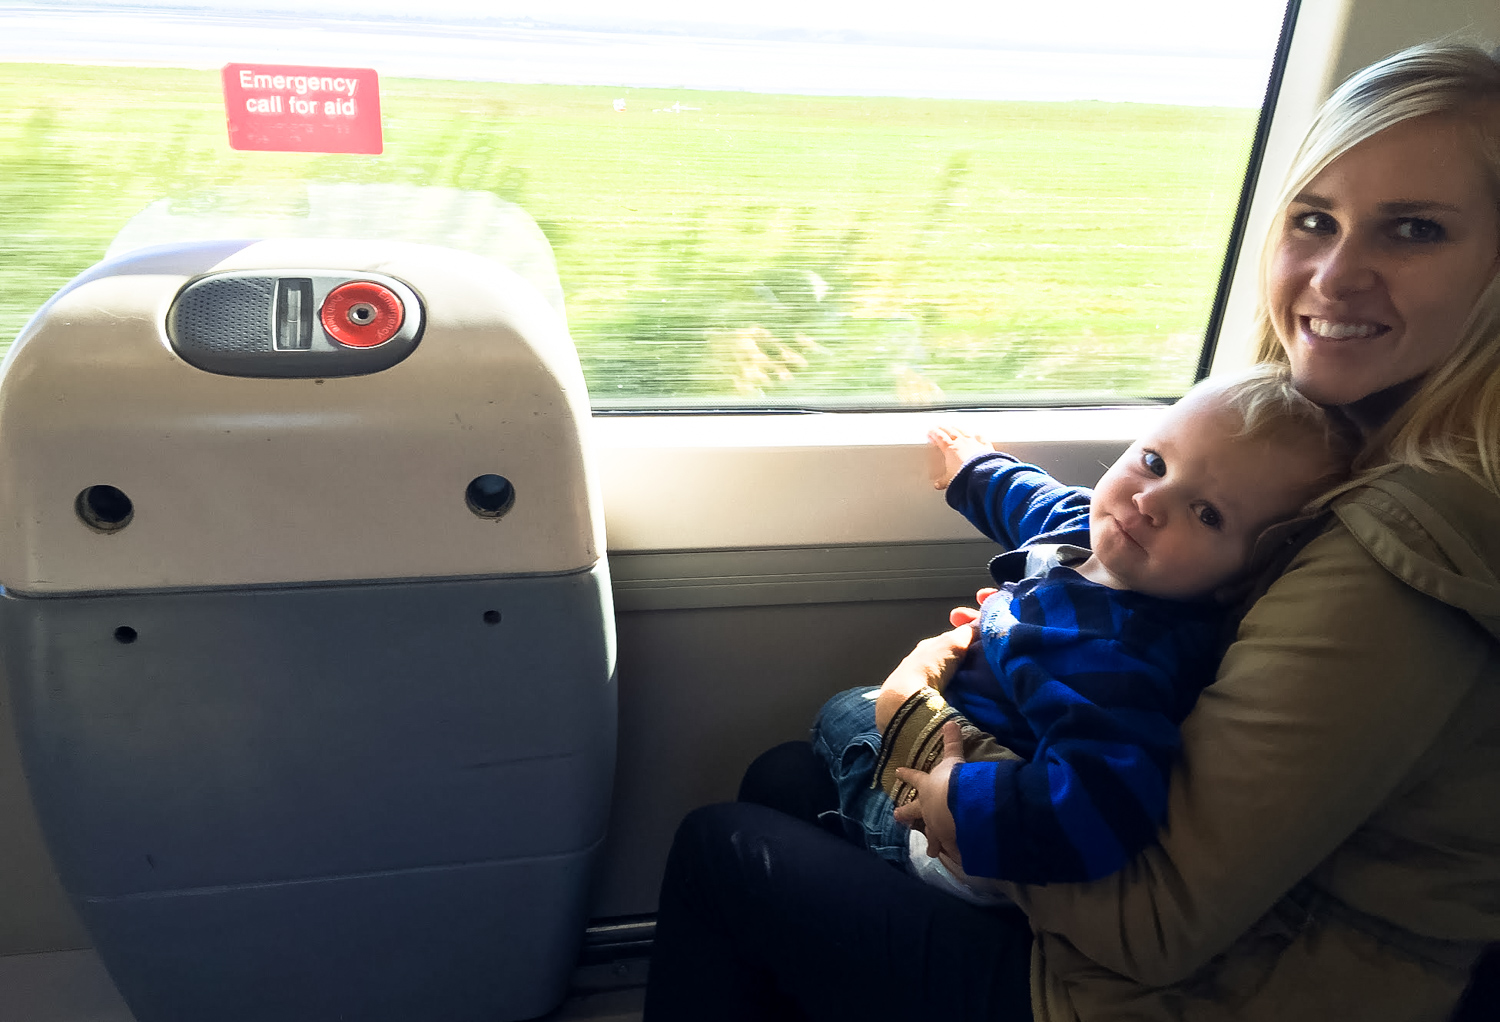 6 reasons why traveling abroad with kids is great